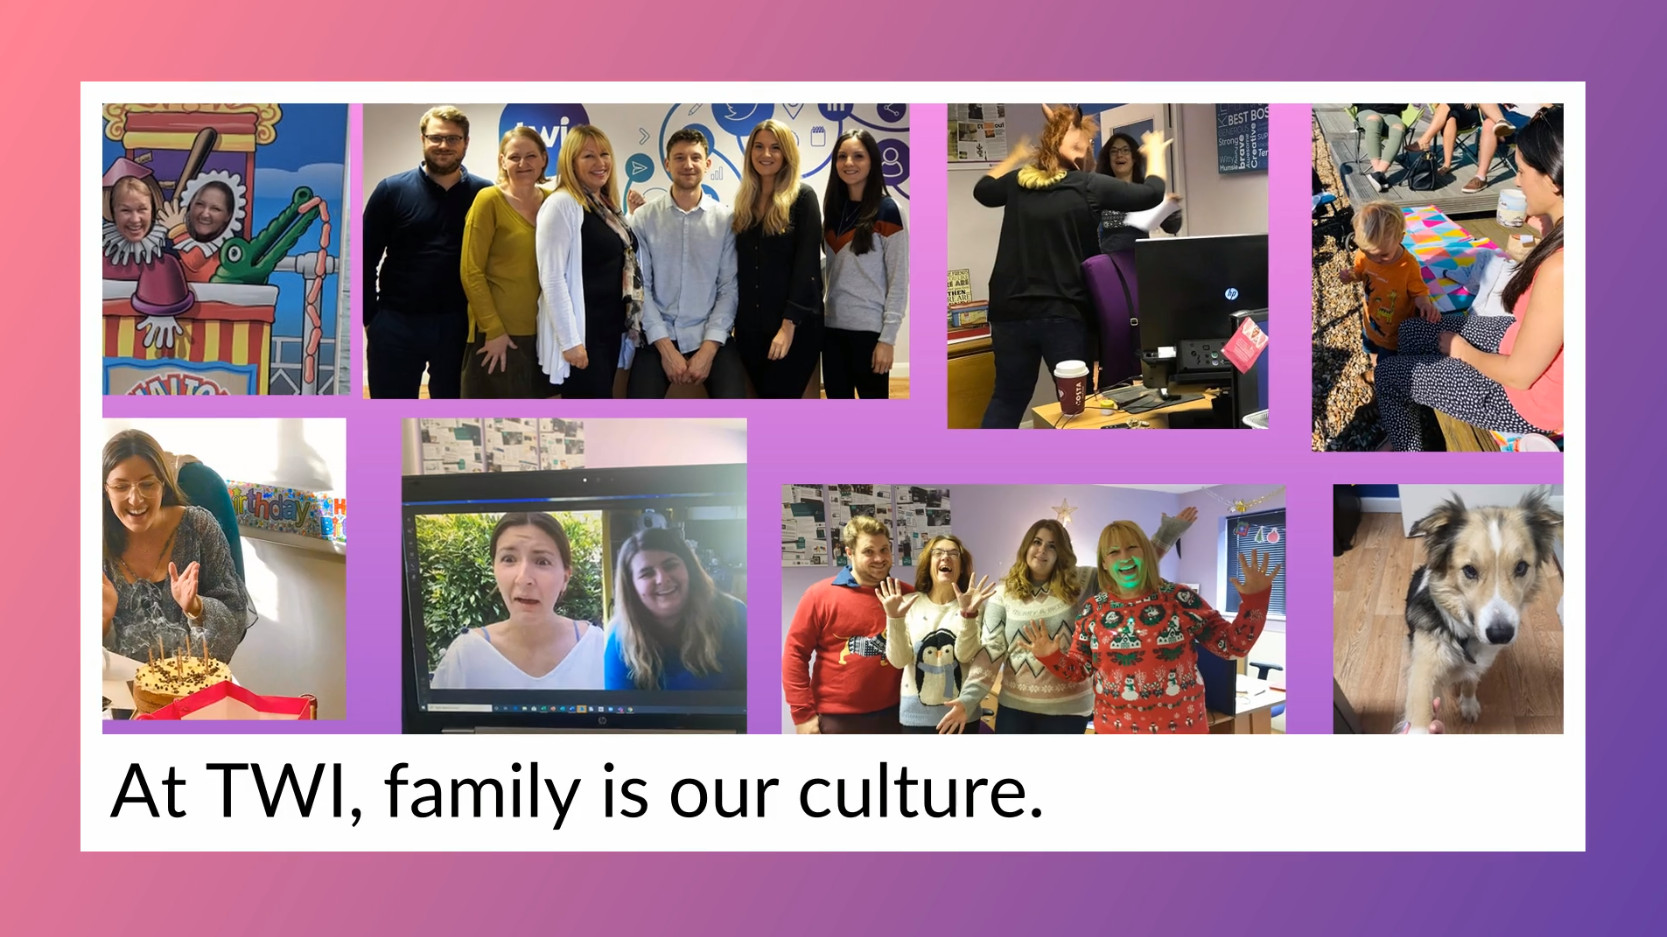 At TWI family is in our culture